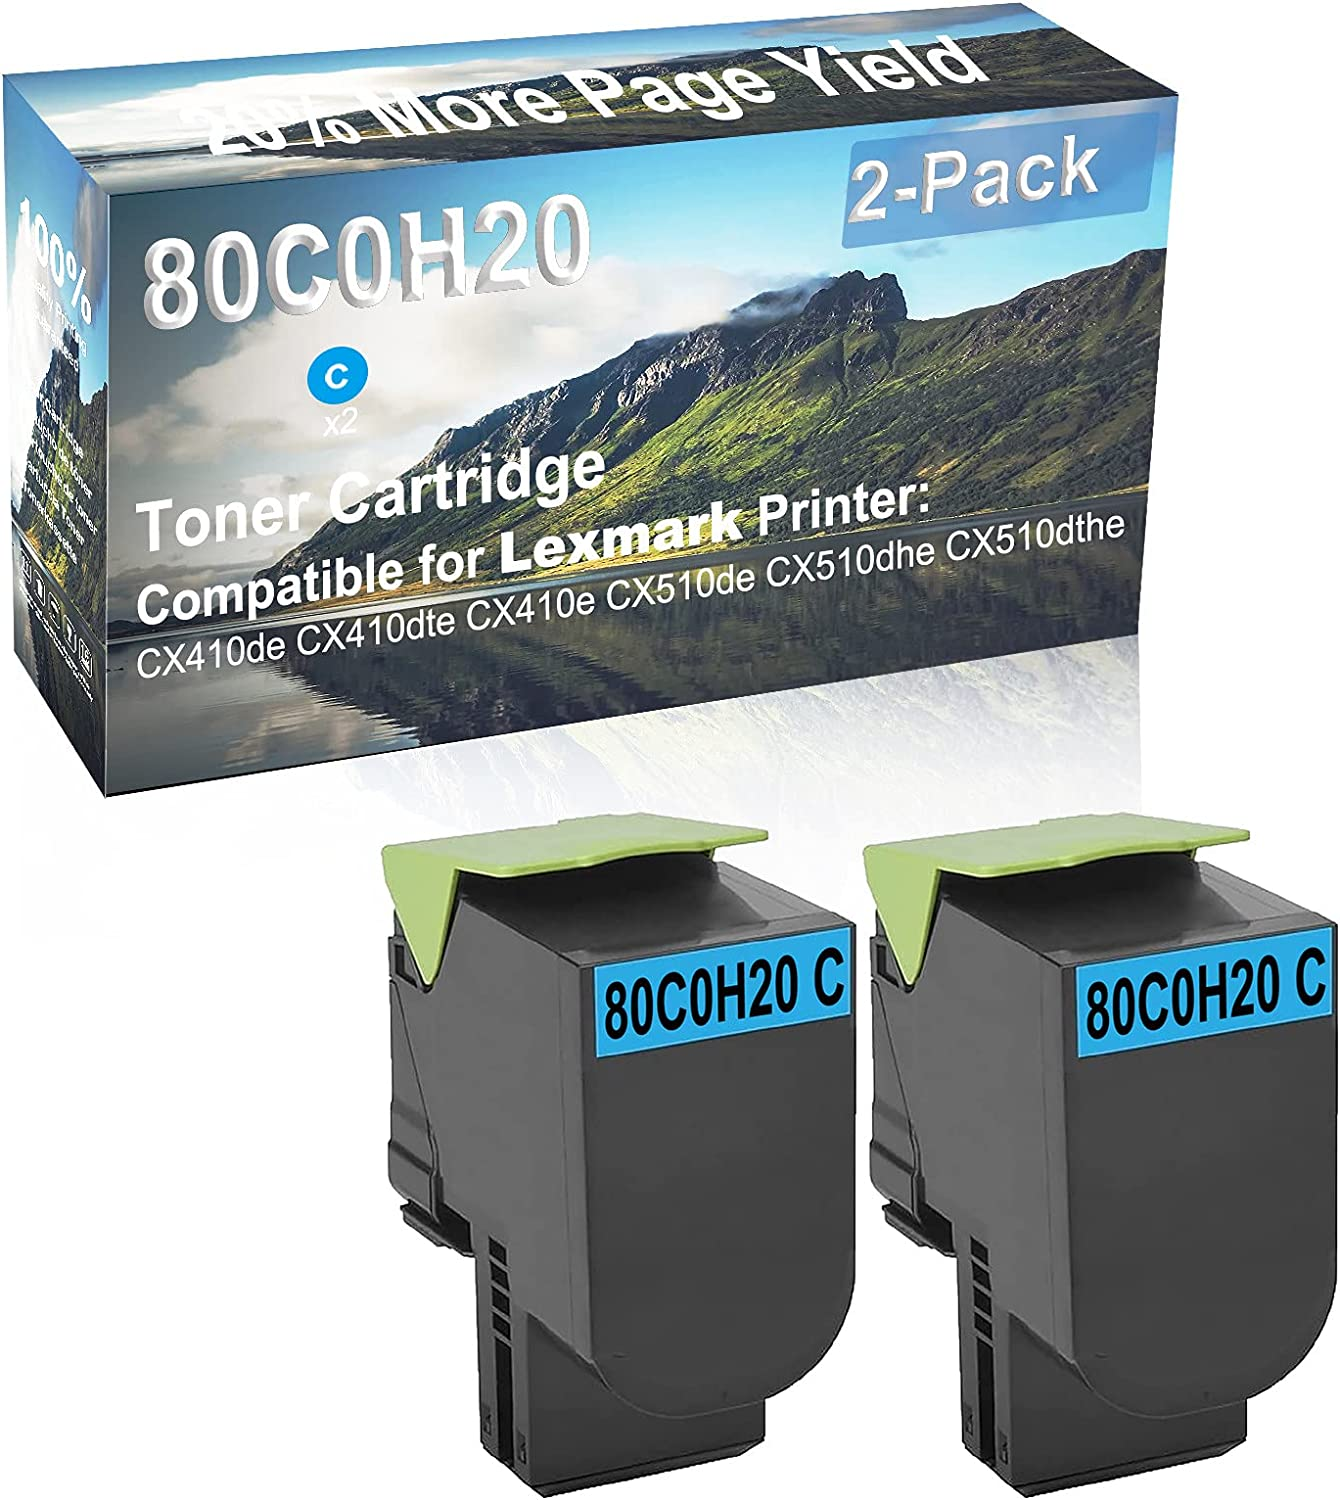 2-Pack (Cyan) Compatible High Capacity 80C0H20 Toner Cartridge Used for Lexmark CX410de, CX410dte Printer